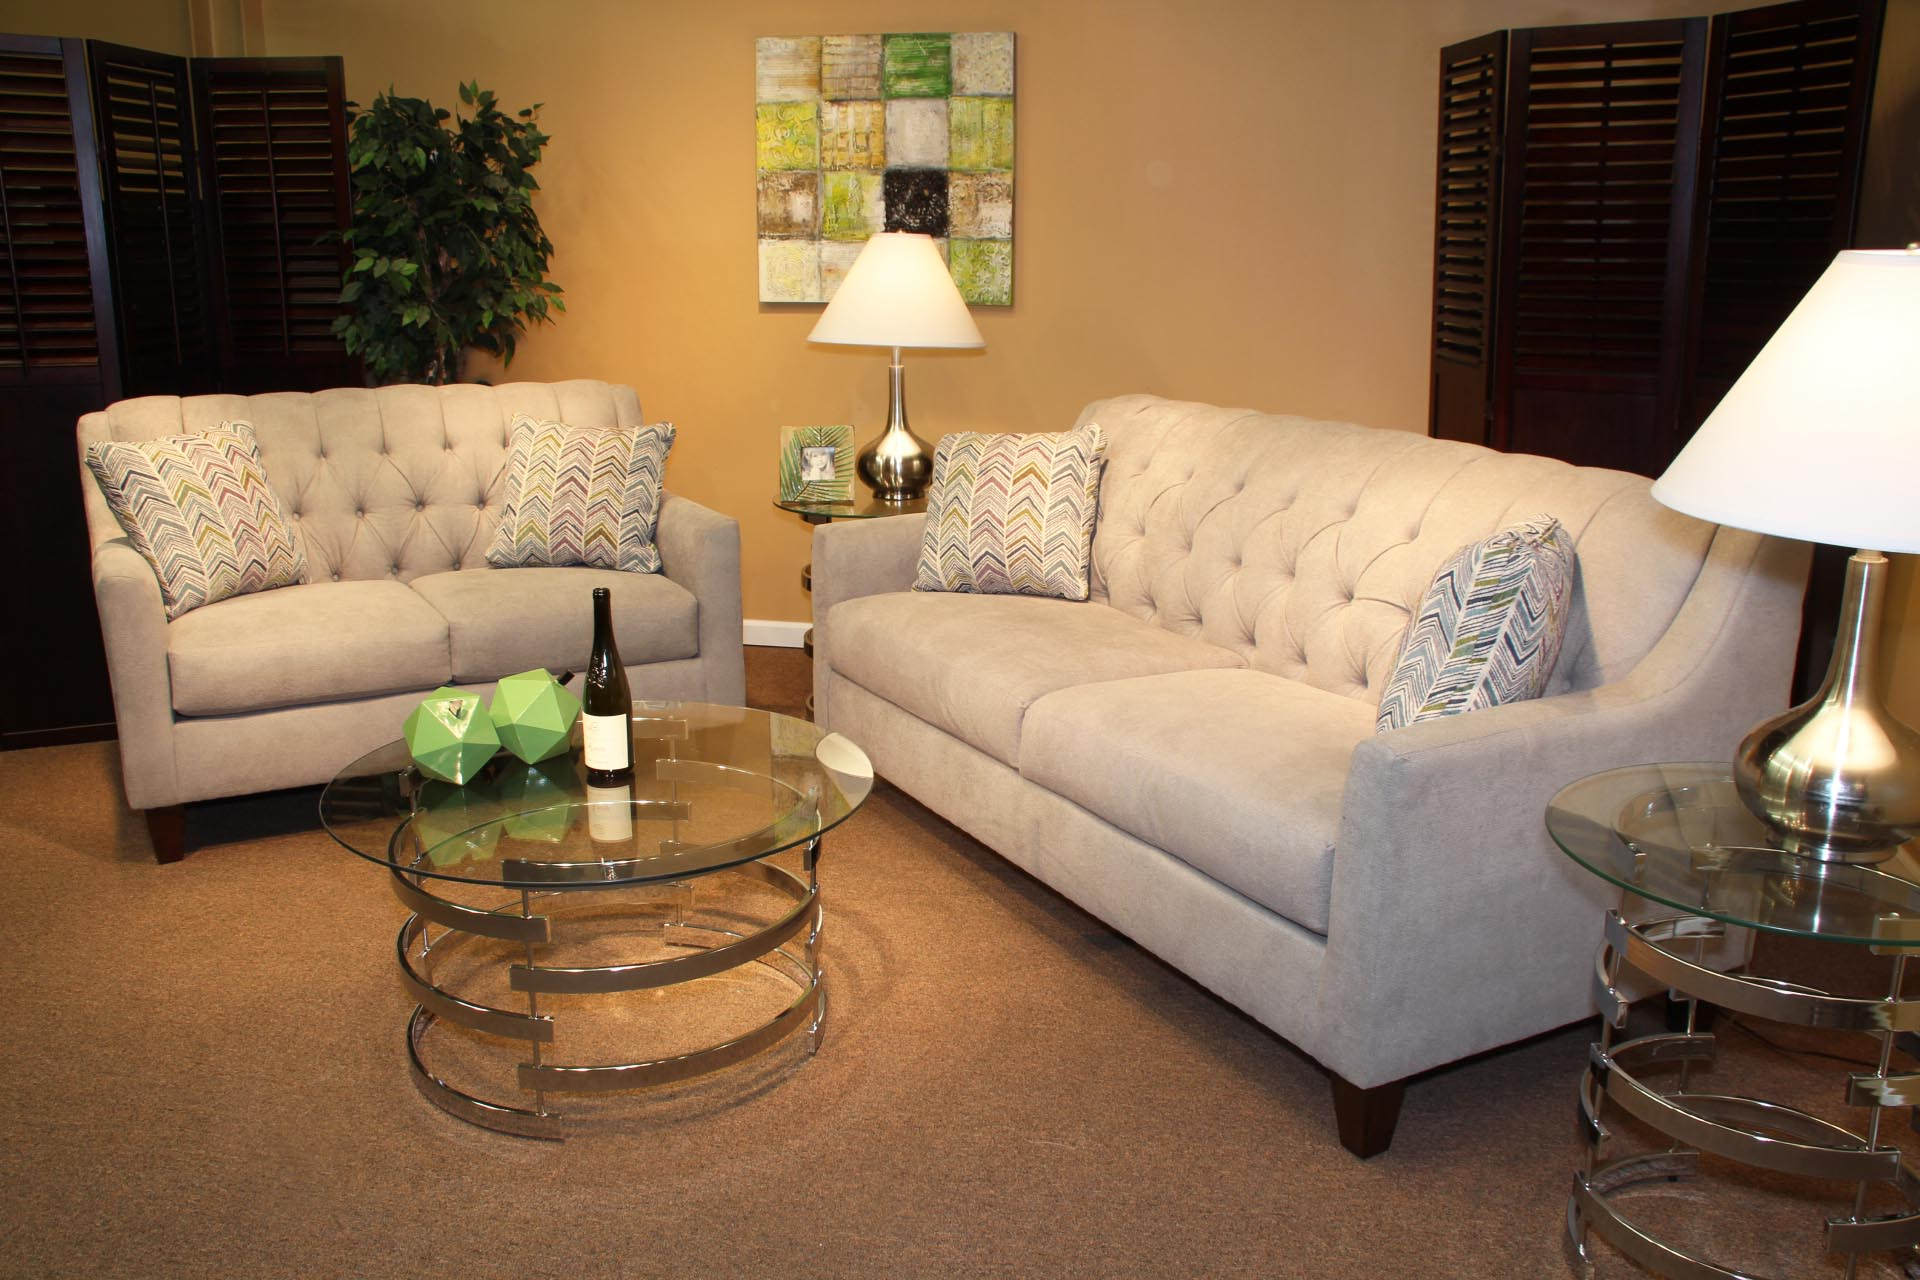 Bon Pittsburgh Furniture Outlet Furniture For Sale Couches And Tables Example